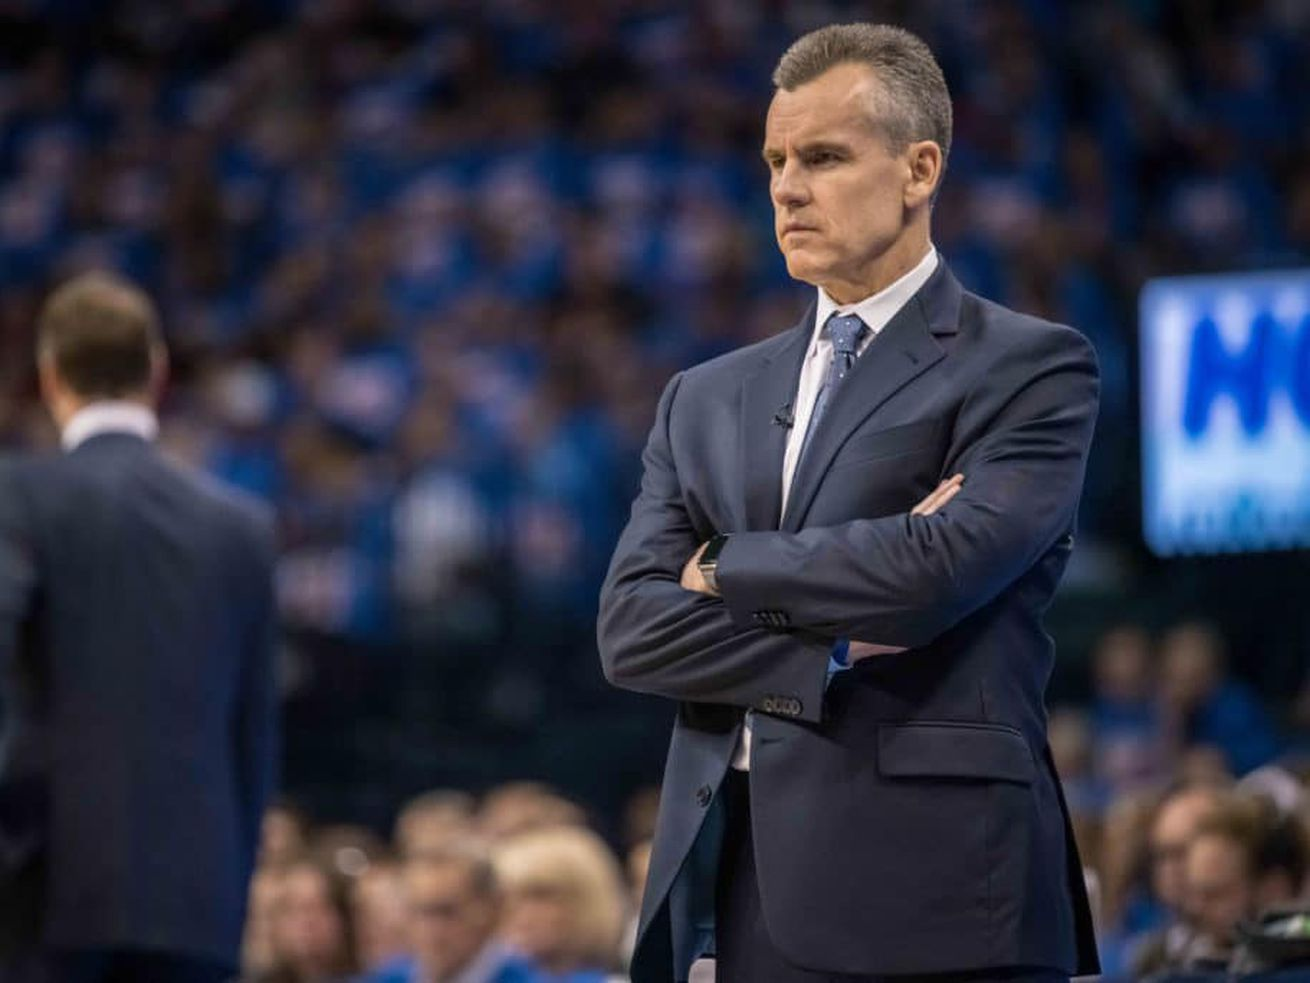 Getting the most out of his players will be the first priority for new Bulls coach Billy Donovan.